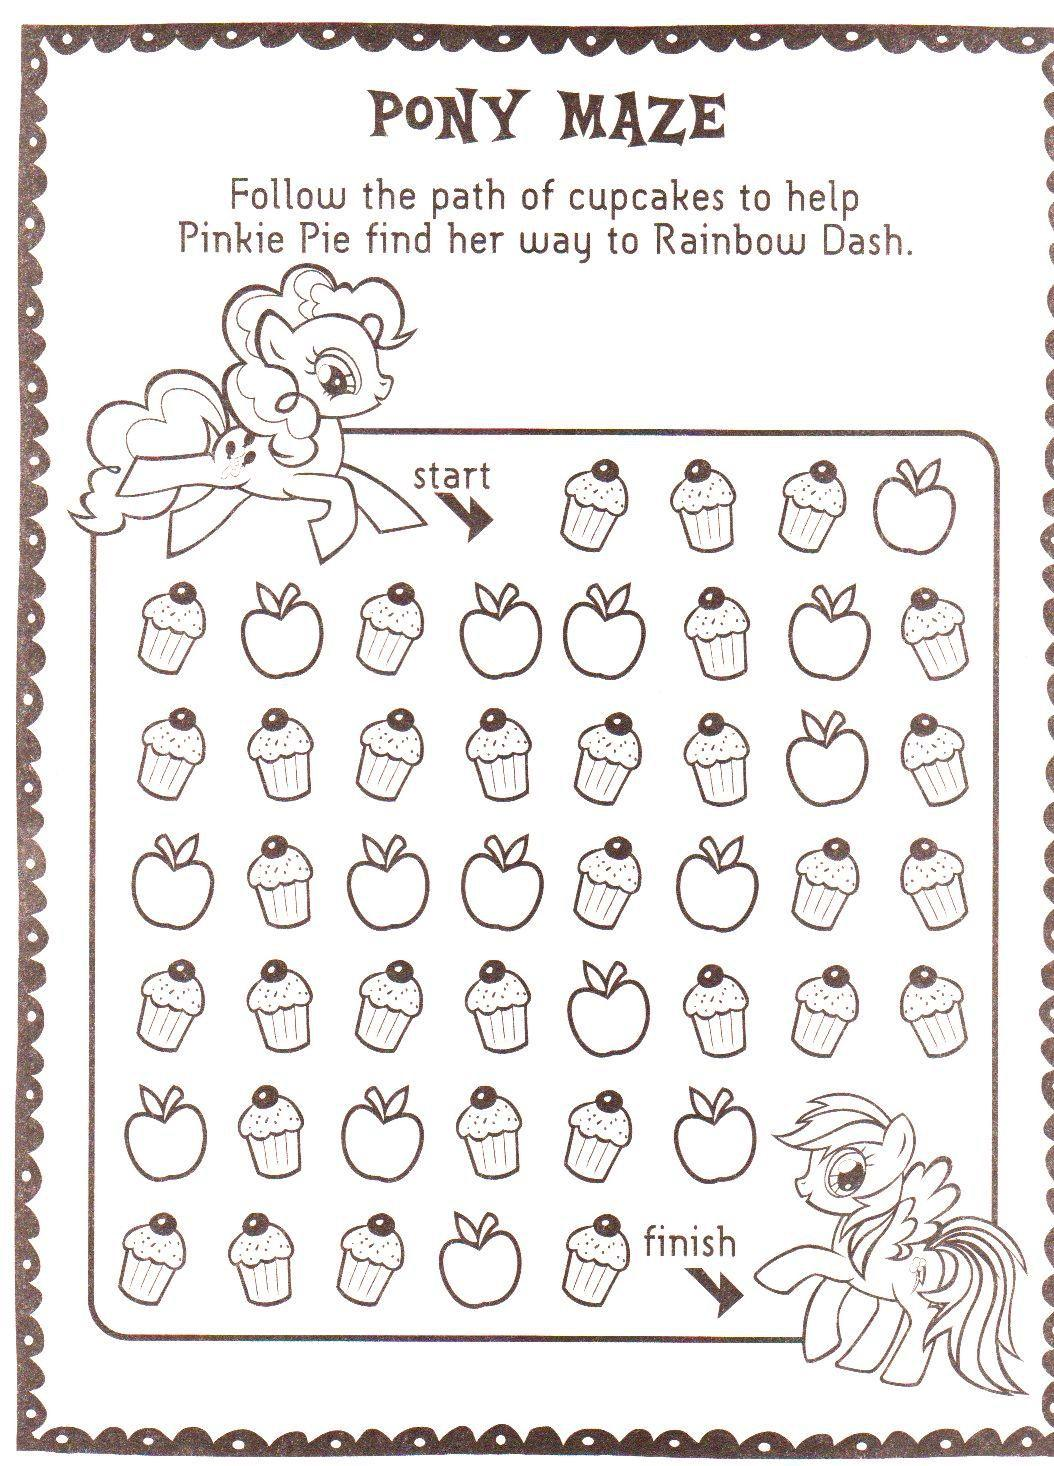 Pinkie Pie And Rainbow Dash Cupcake Maze My Little Pony